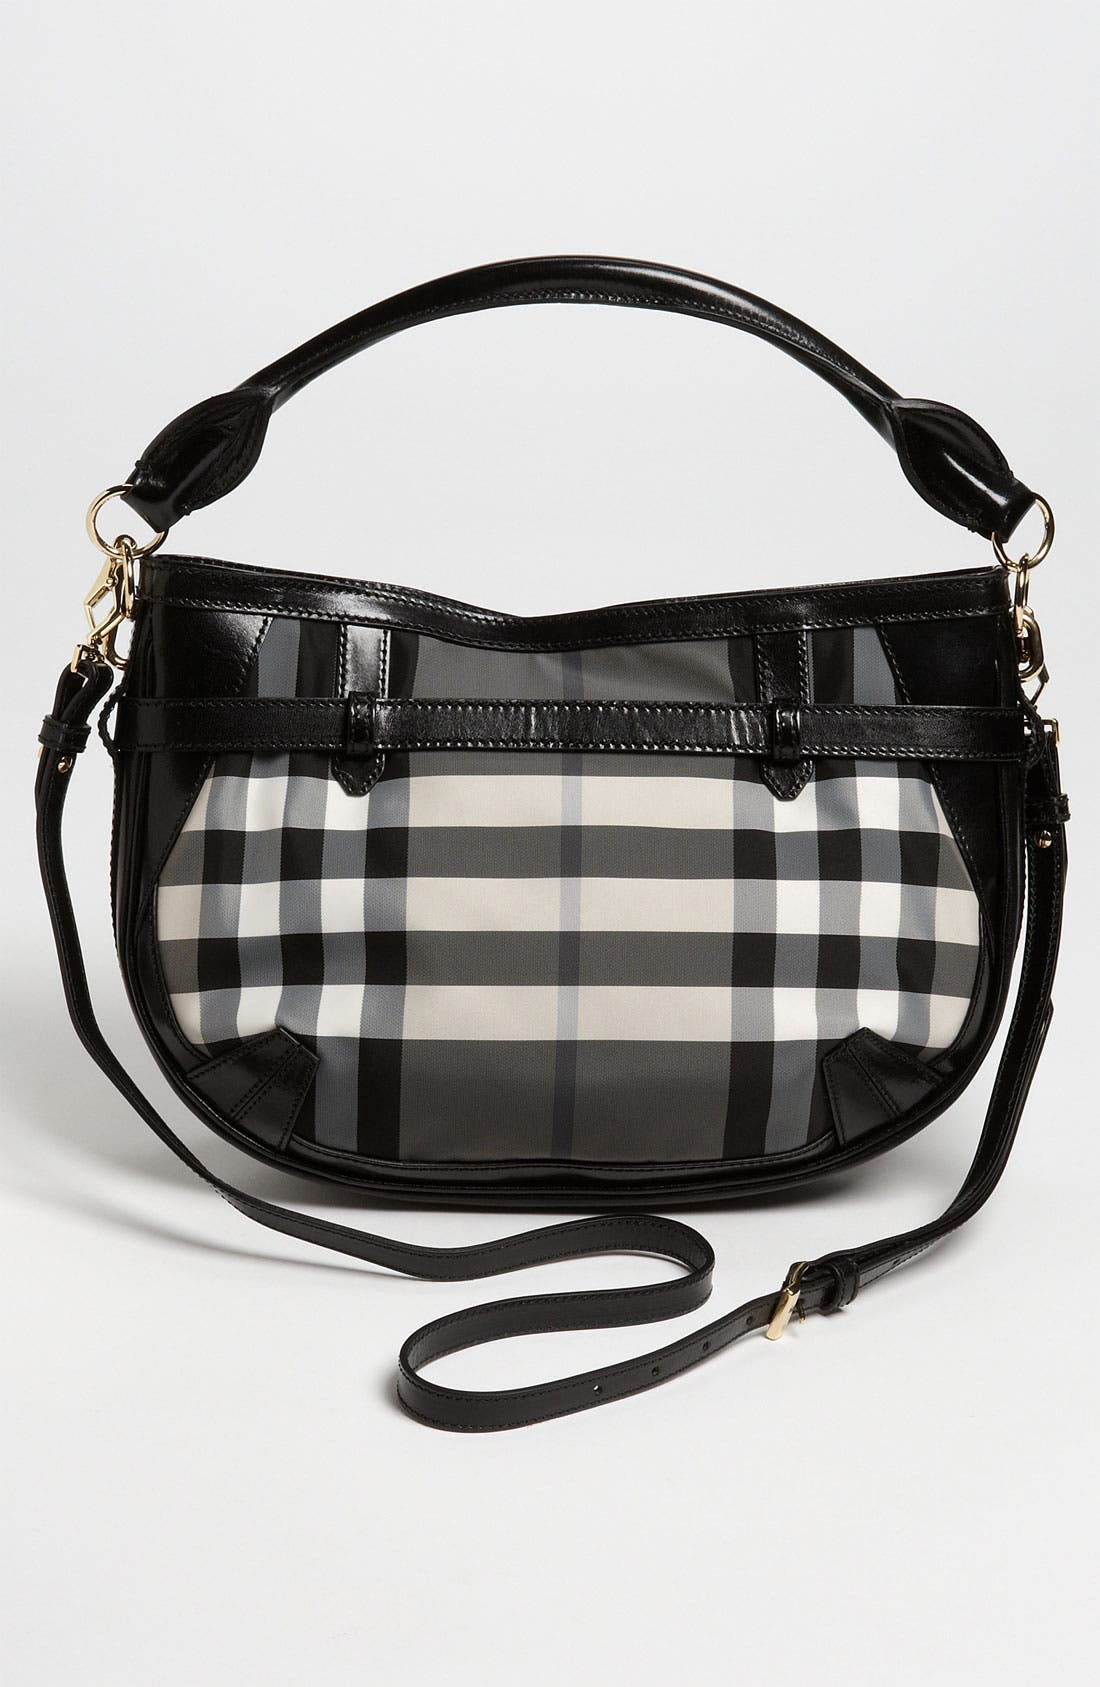 Prorsum 'Charcoal Check' Crossbody Bag,                             Alternate thumbnail 4, color,                             020